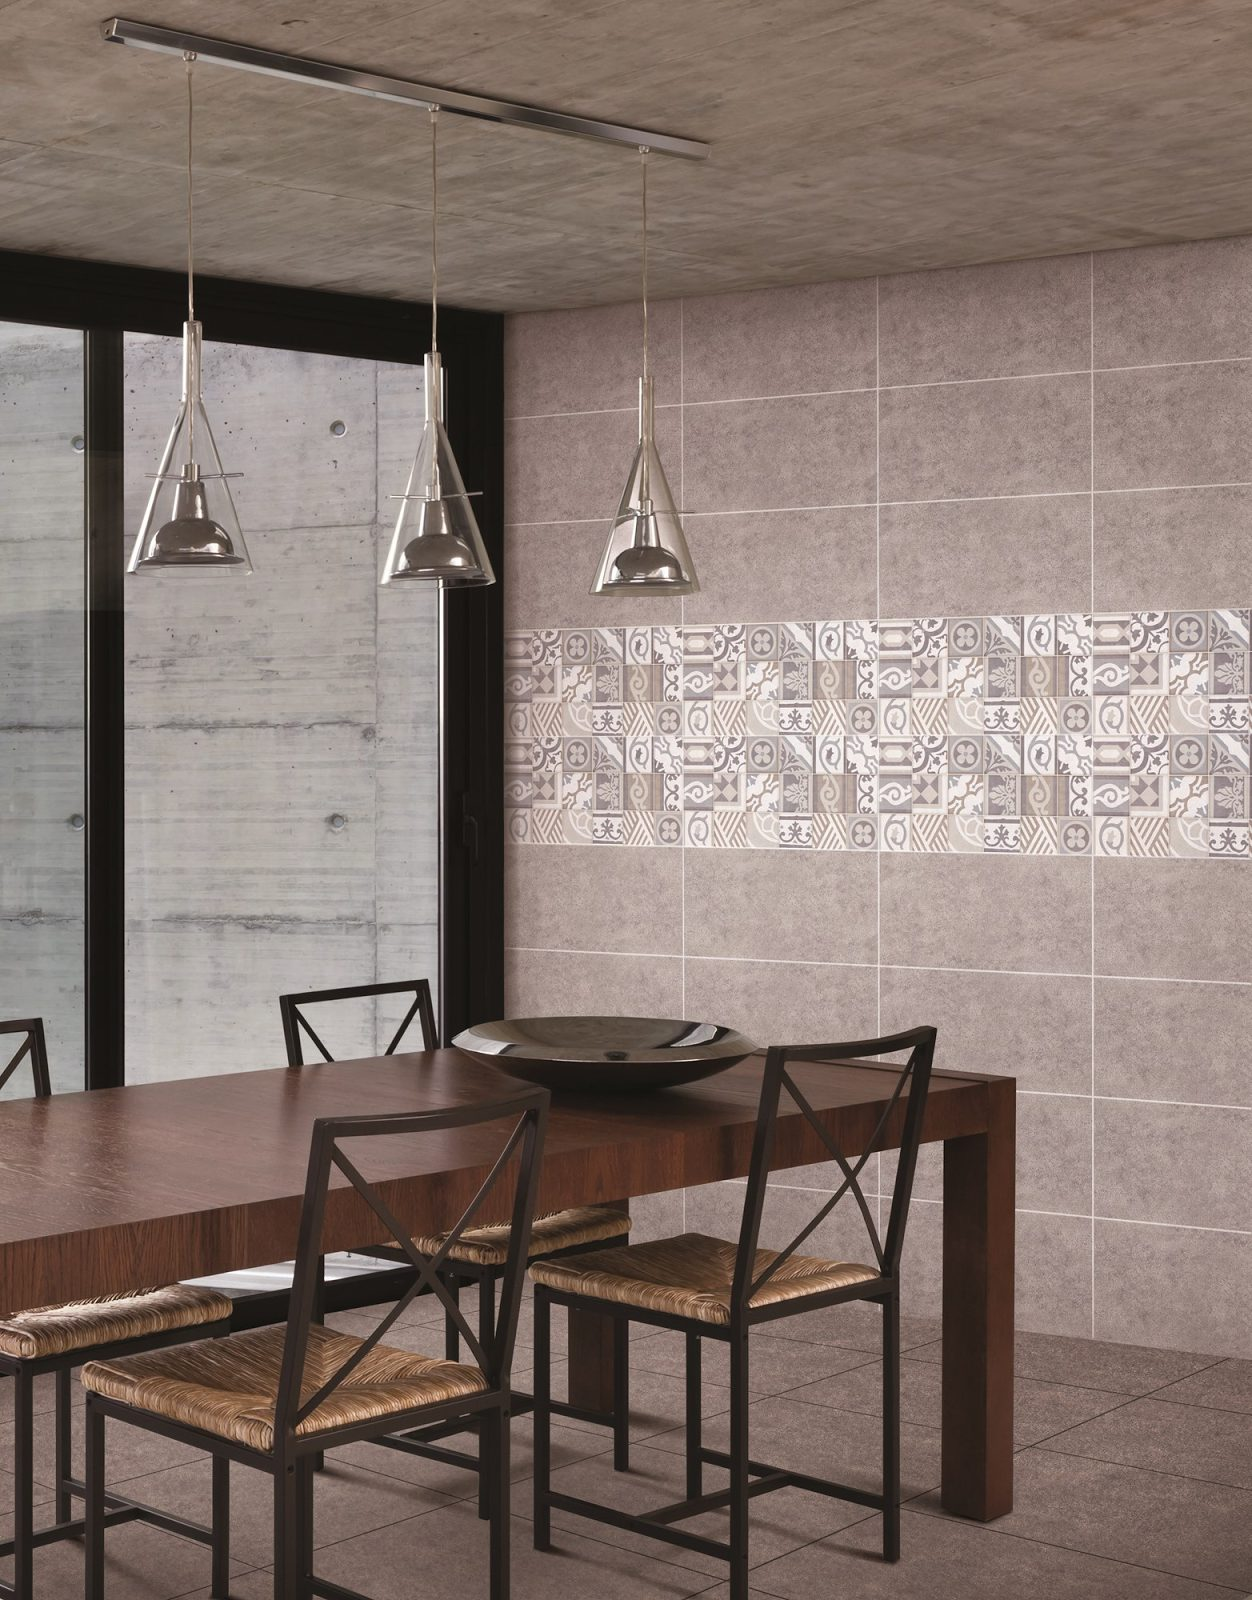 Mixing different tile designs for the wall. Source: Guocera